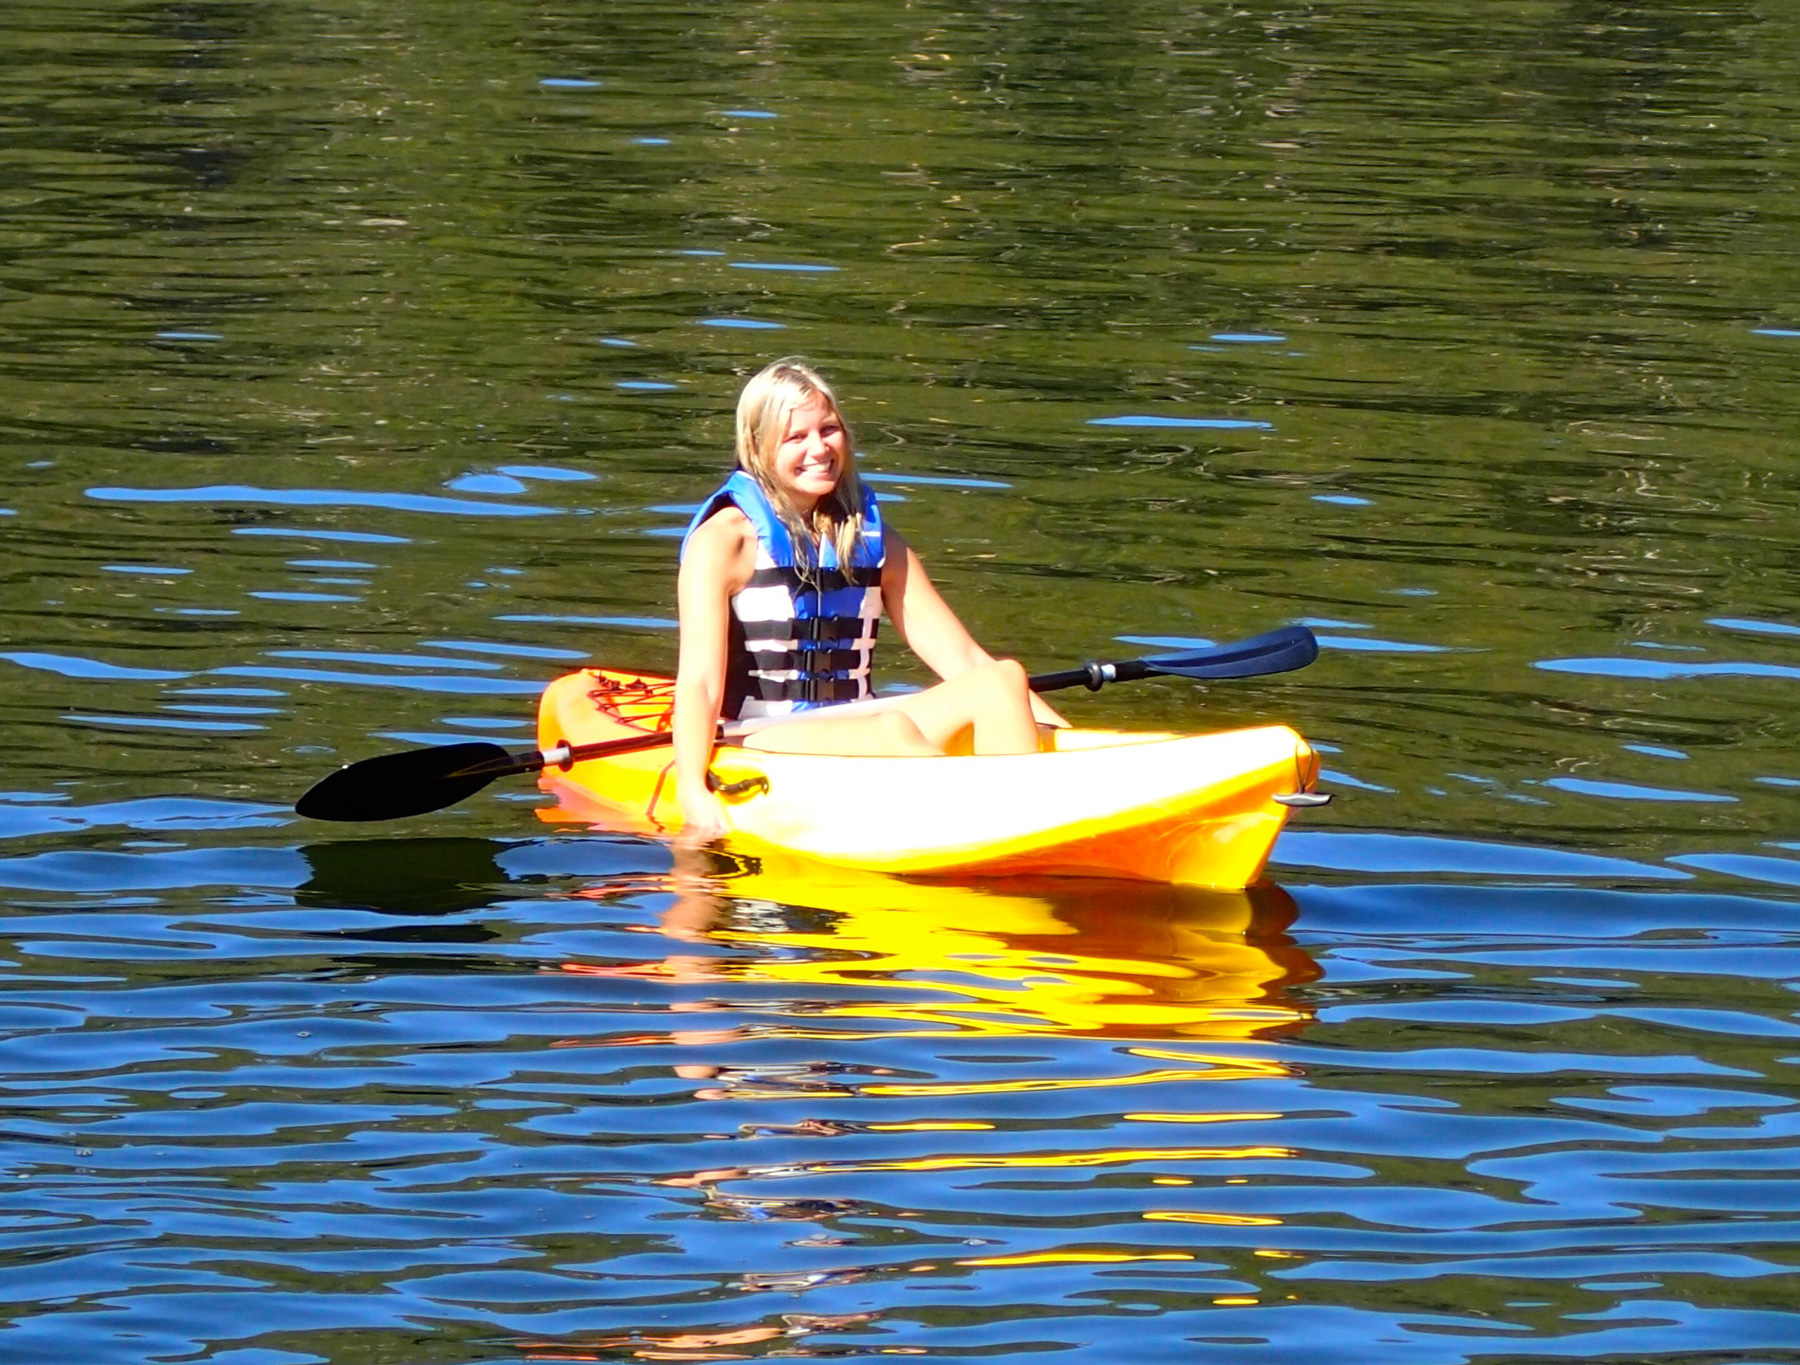 Smiling Girl With Life Jacket On Seated In Kayak On The Water